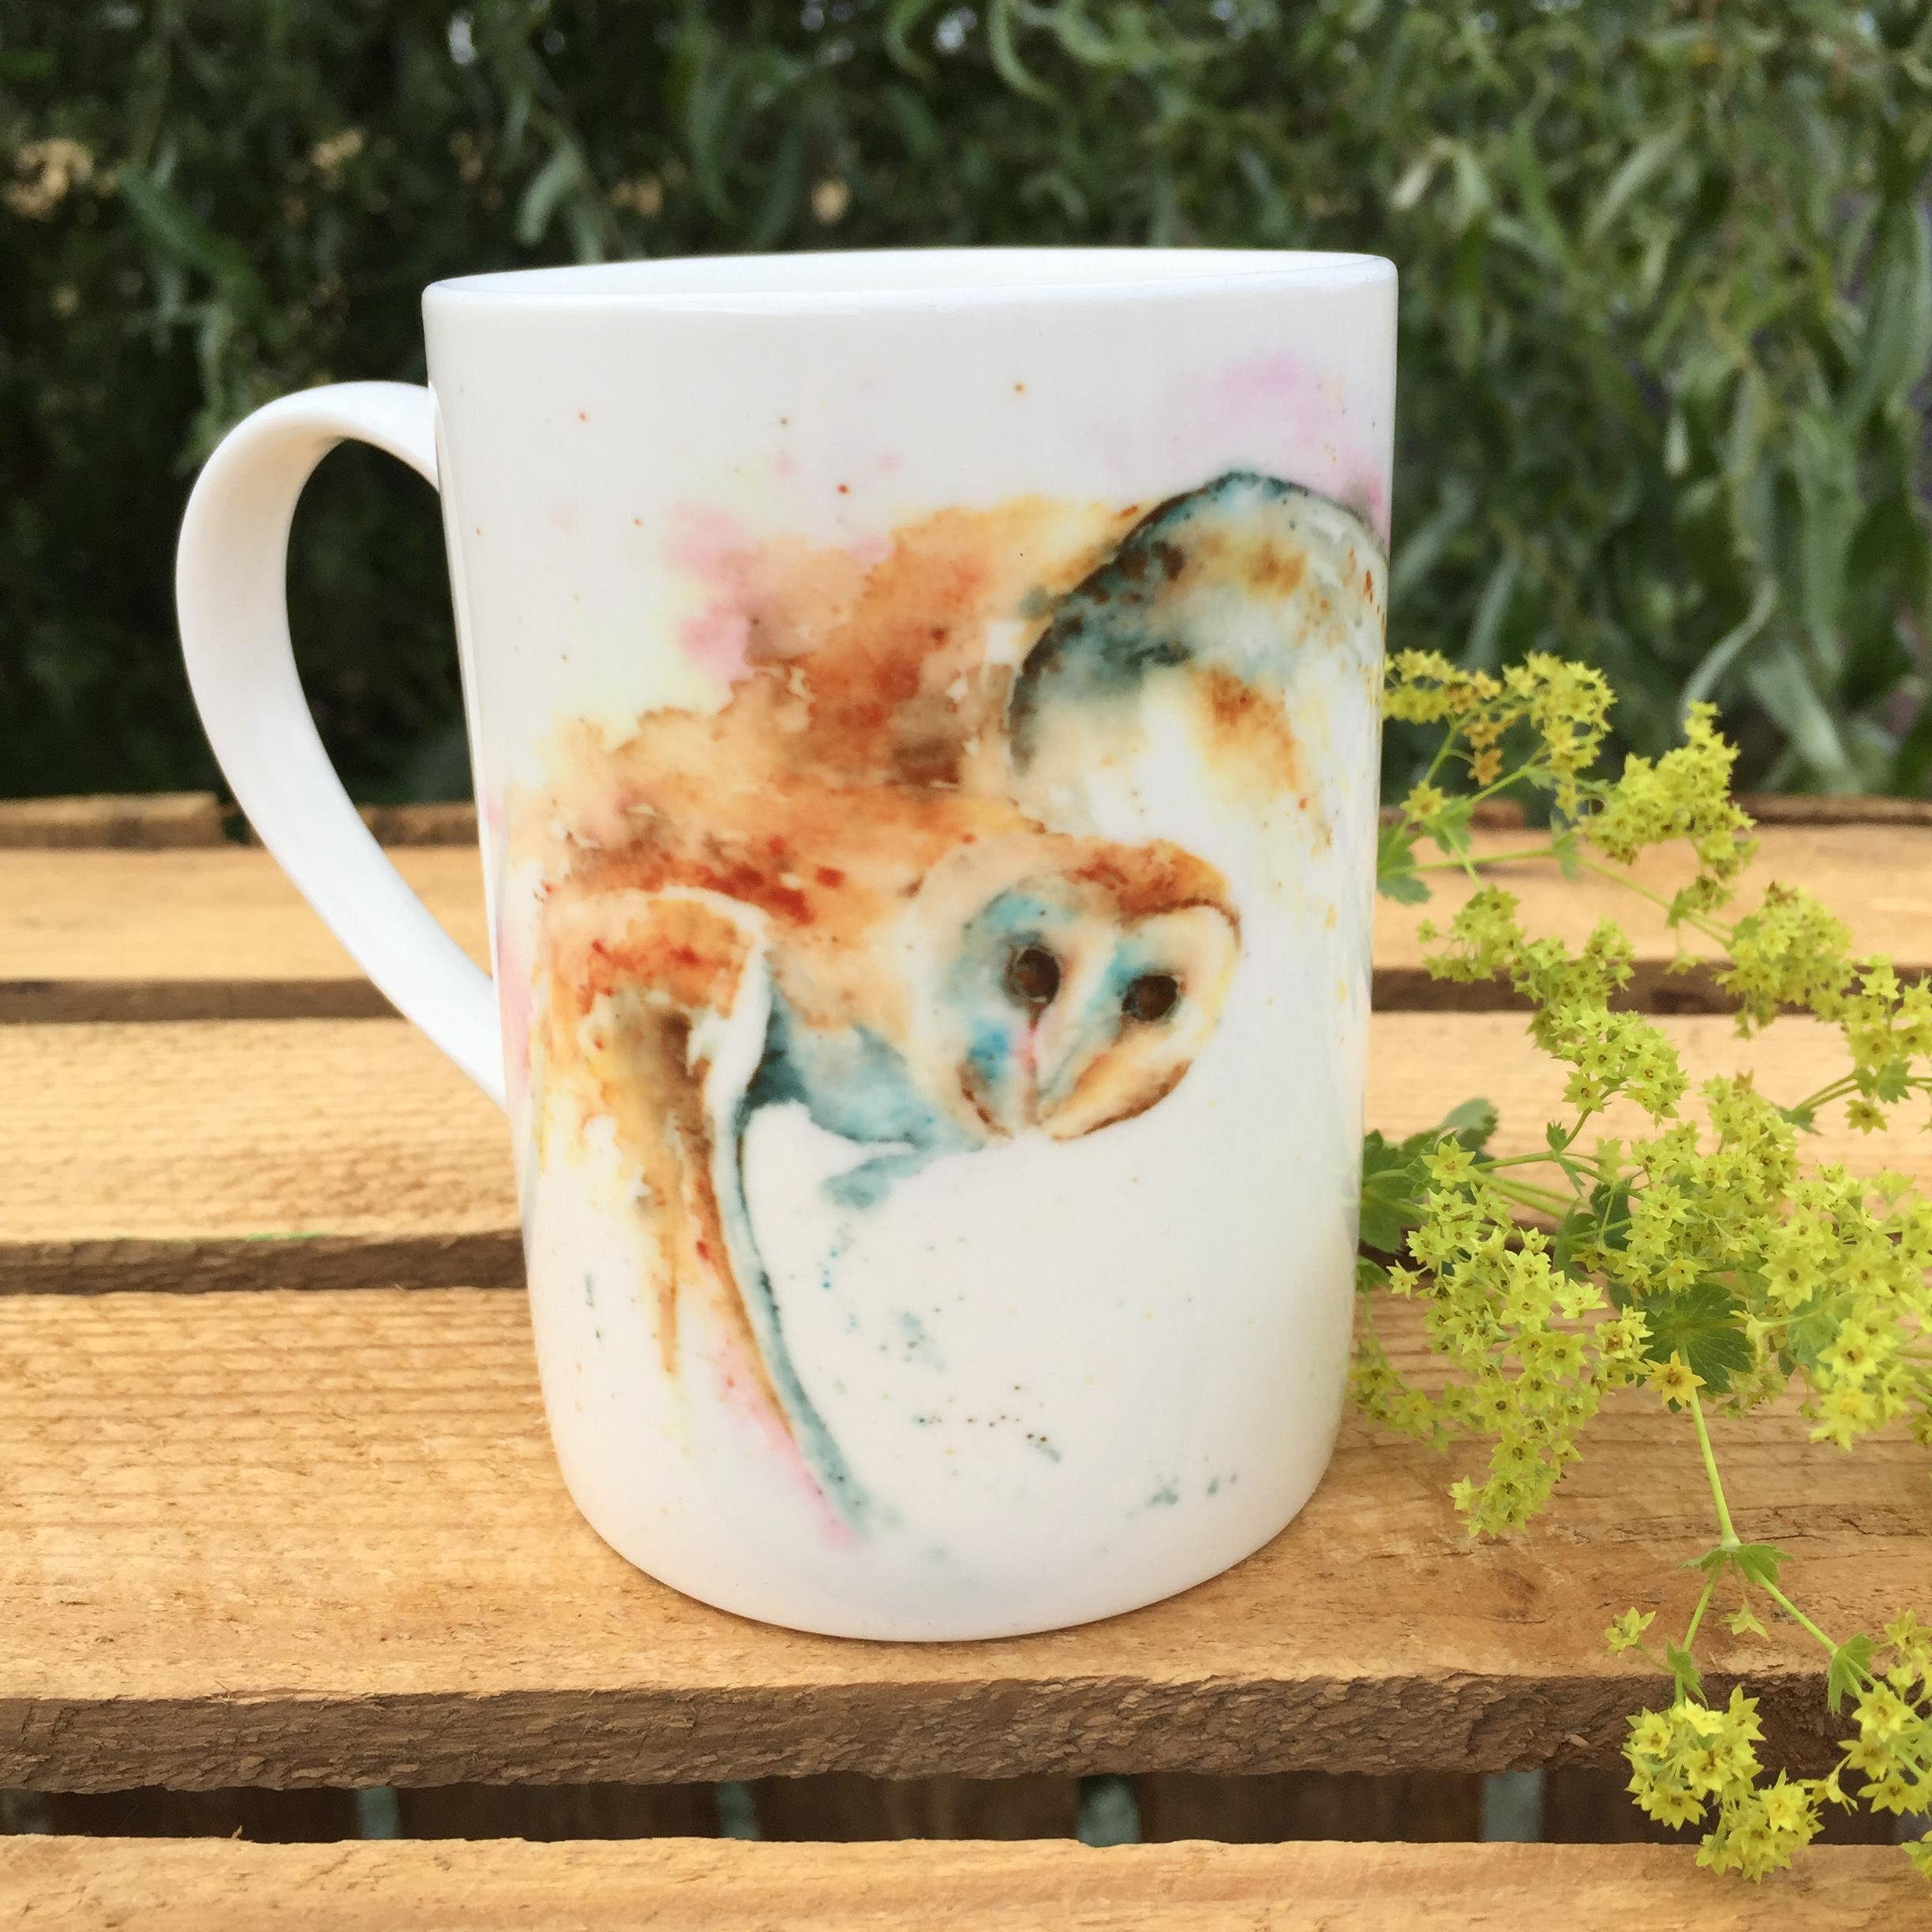 10oz barn owl mug